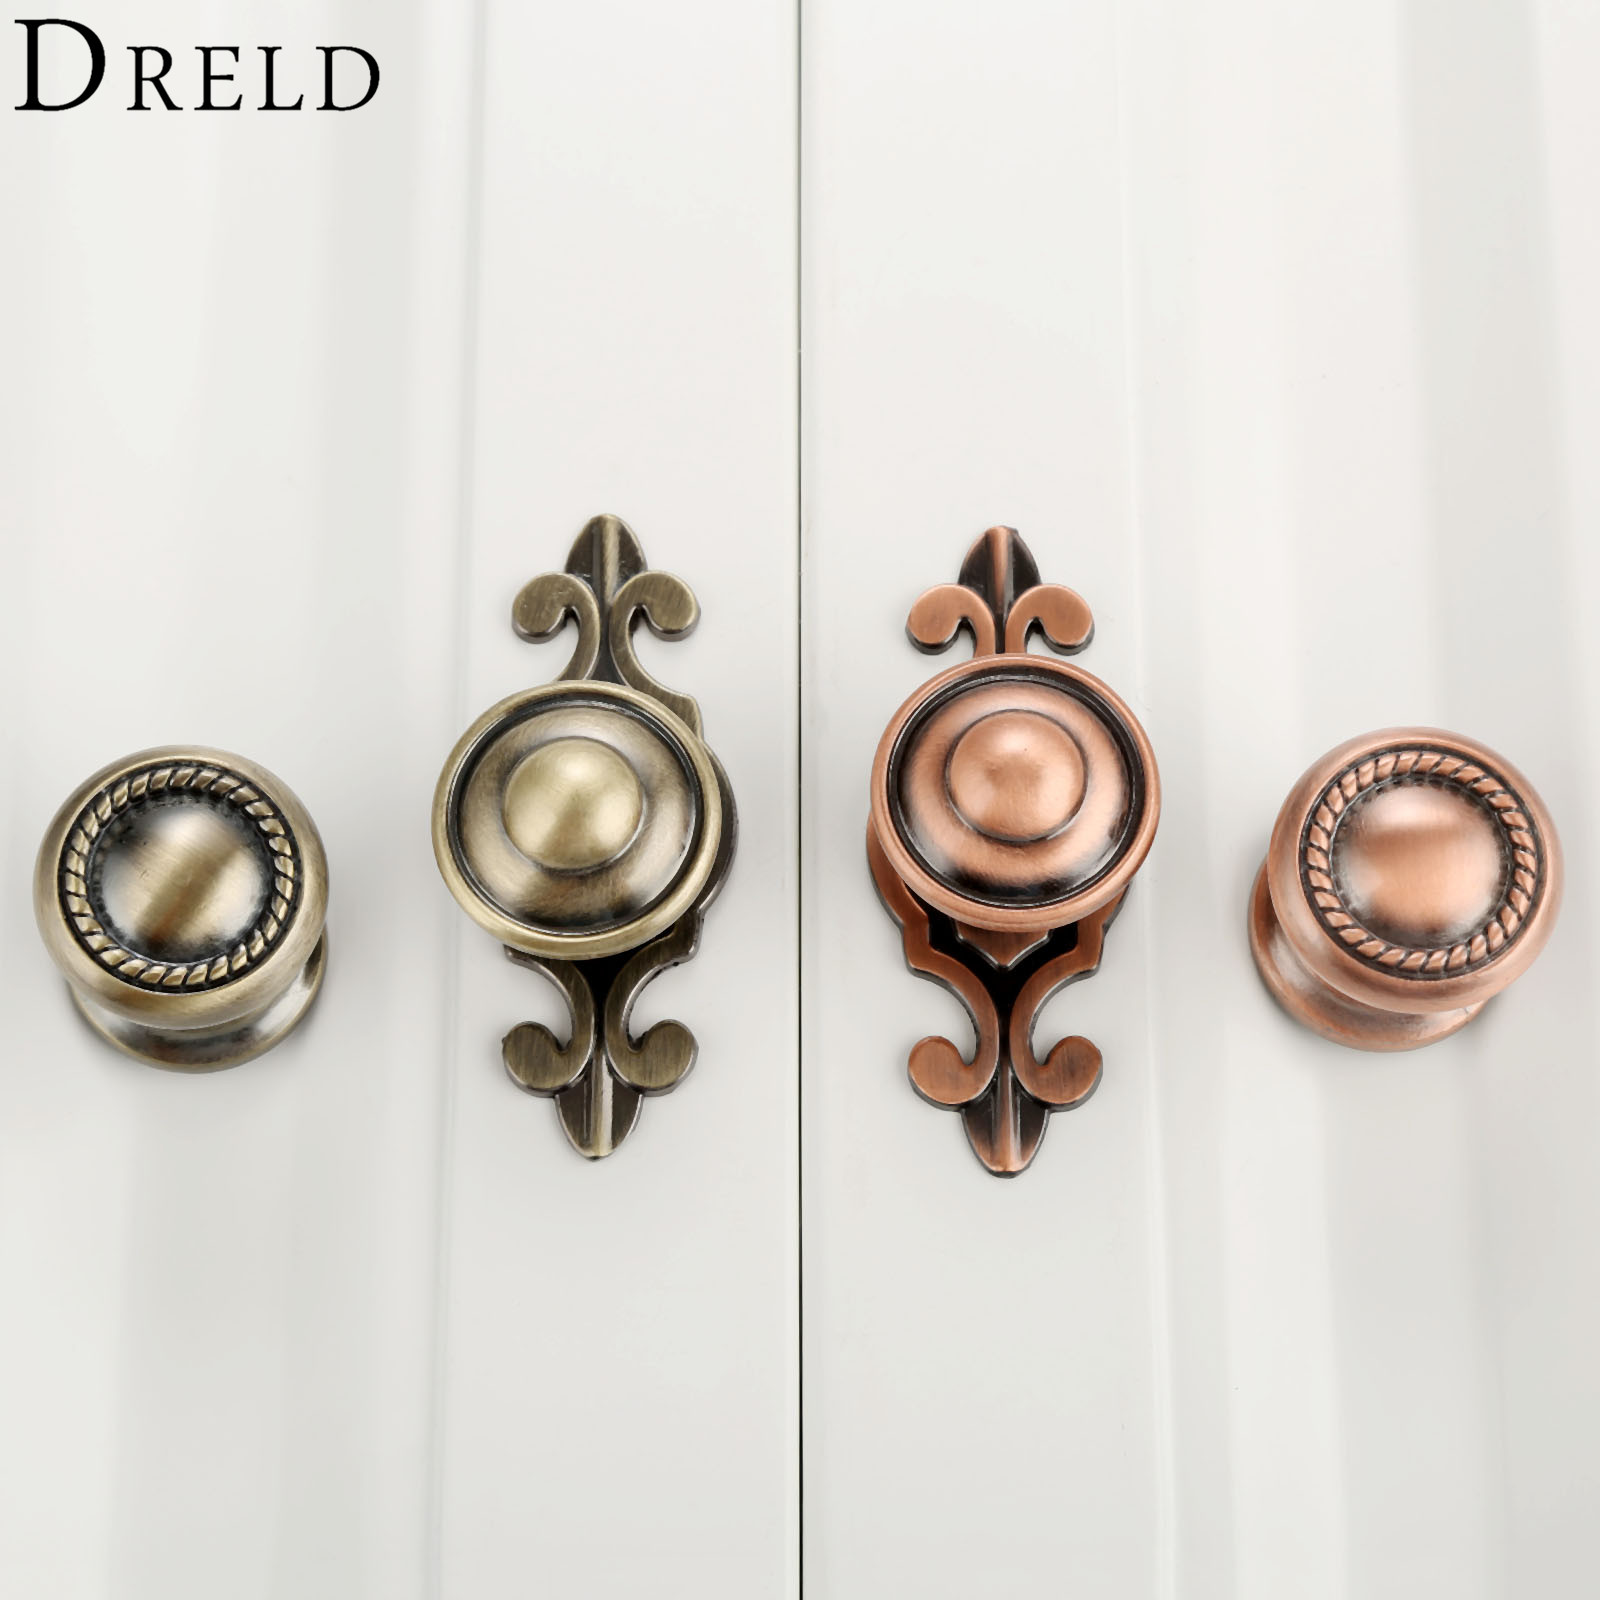 DRELD Furniture Handles Vintage Cabinet Knobs and Handles Alloy Door Knob Cupboard Drawer Kitchen Pull Handle Furniture Hardware 10 inch long cabinet handles and knobs drawer pull for furniture and cupboard simple wardrobe handle zinc alloy door handle